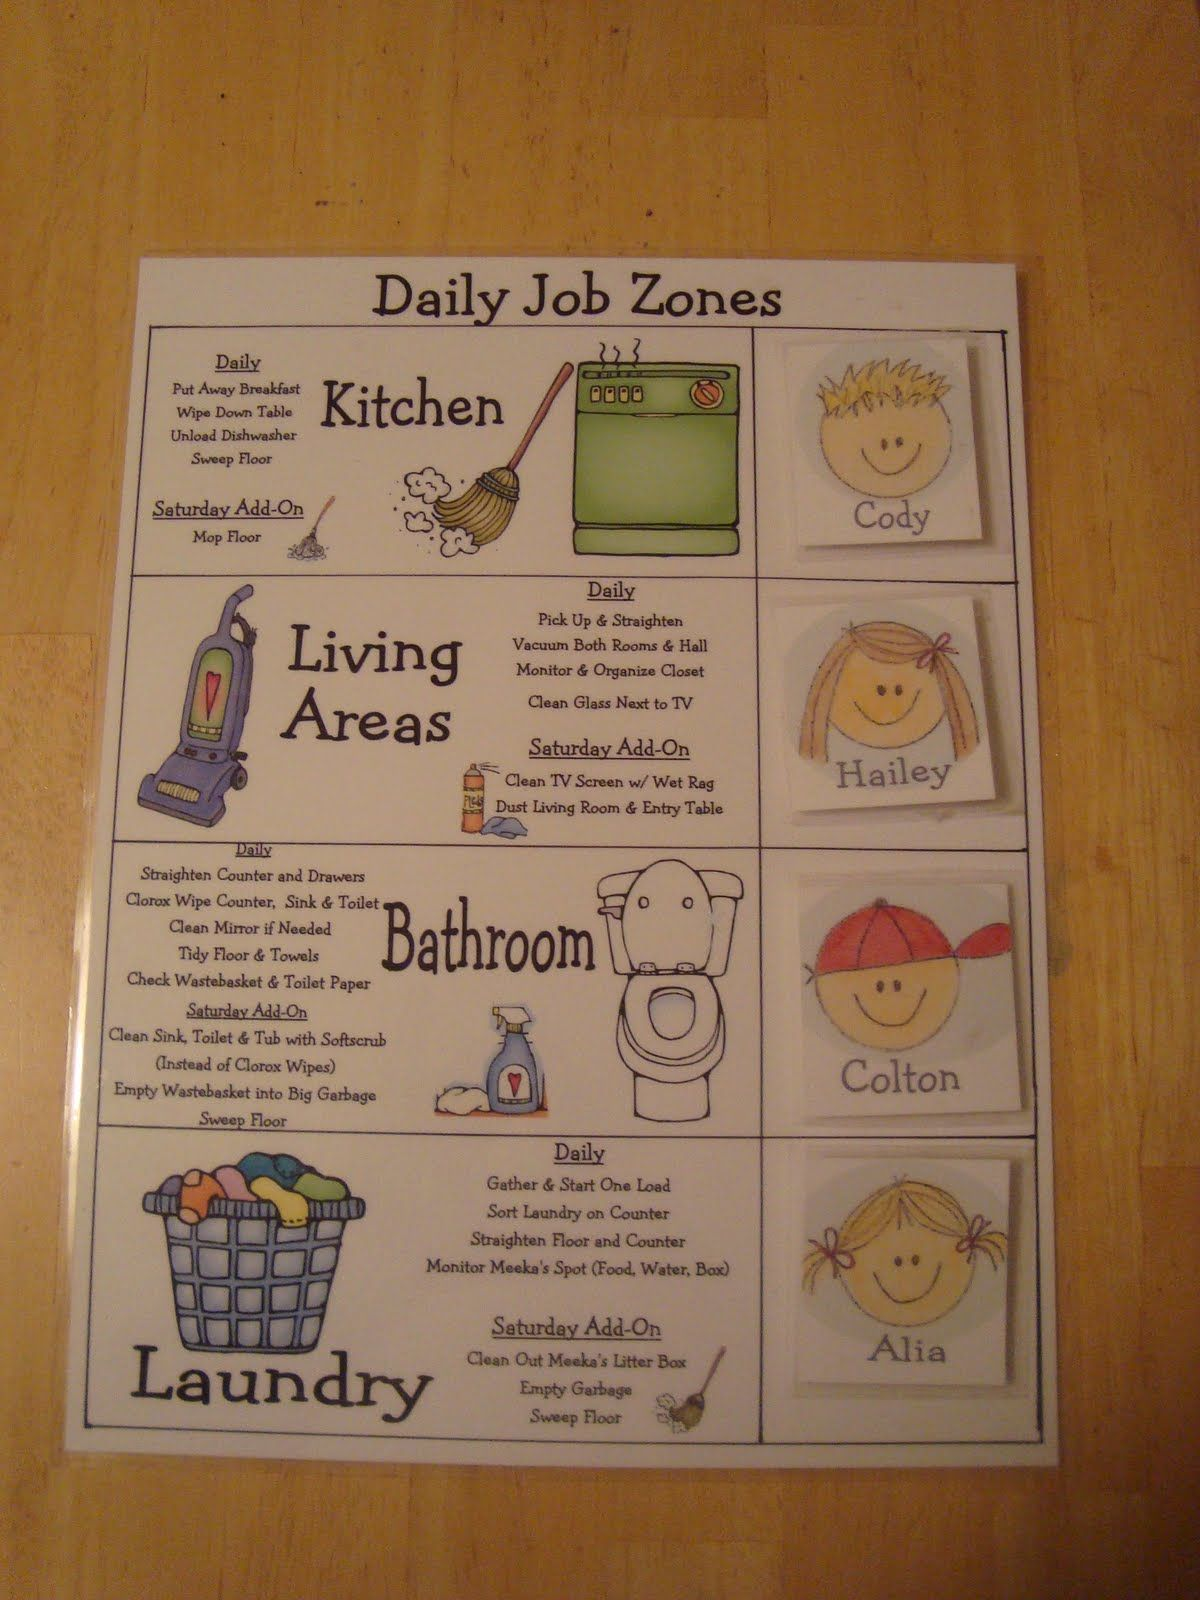 C Charts I Love This Idea How It Outlines The Job And Gives Flexibility To Change Plus Is Laminated Last